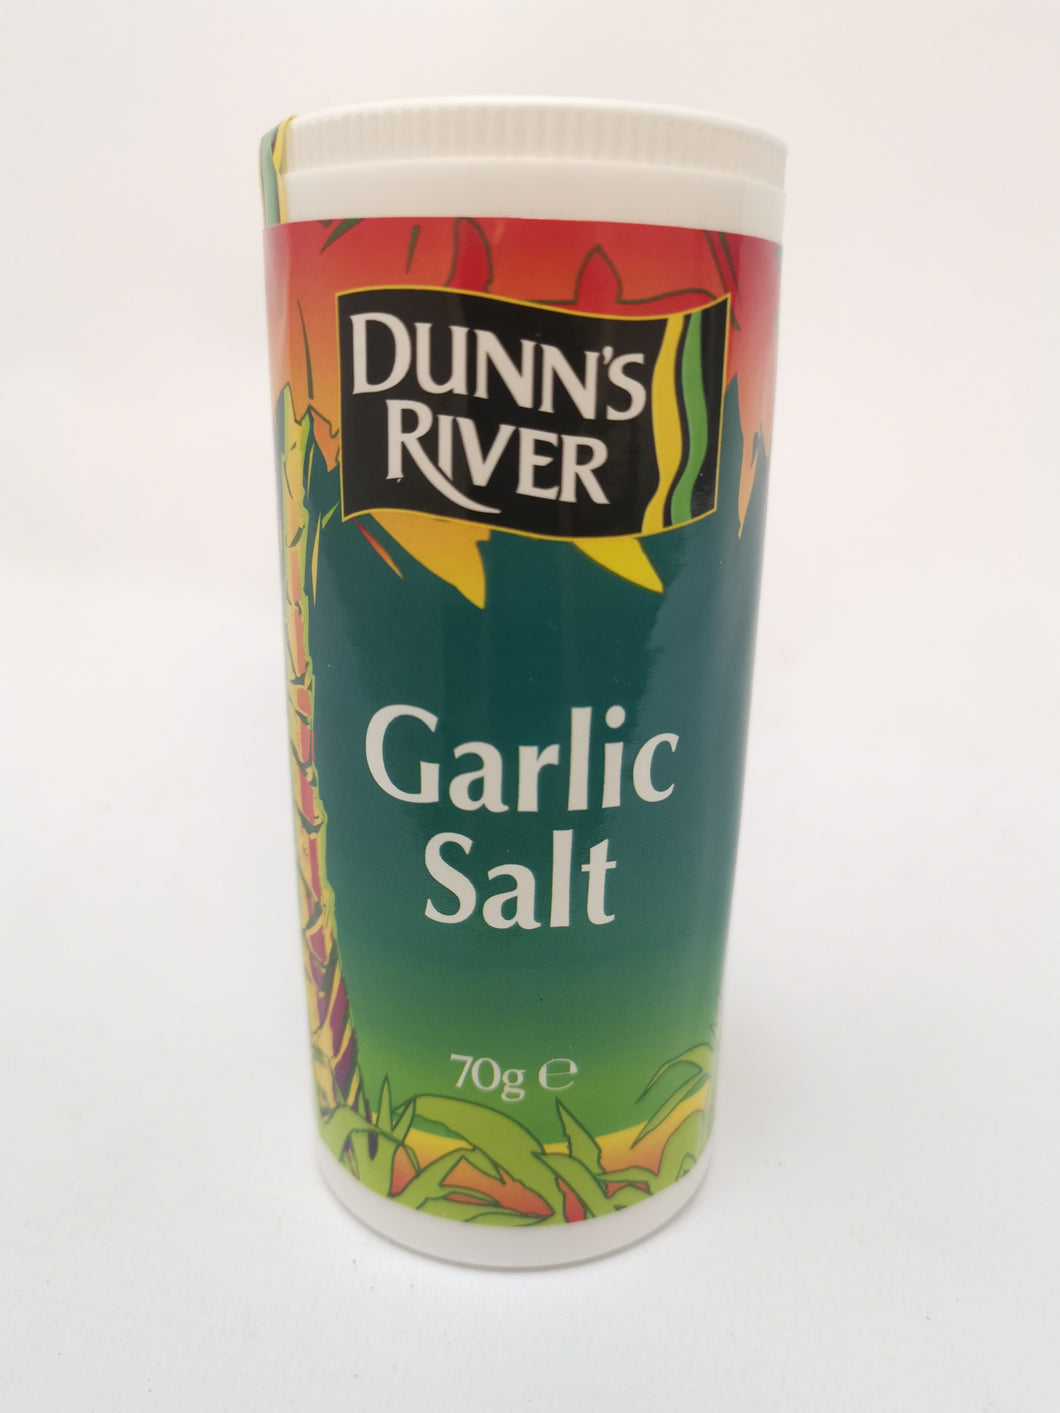 Dunn's River Garlic Salt 70g